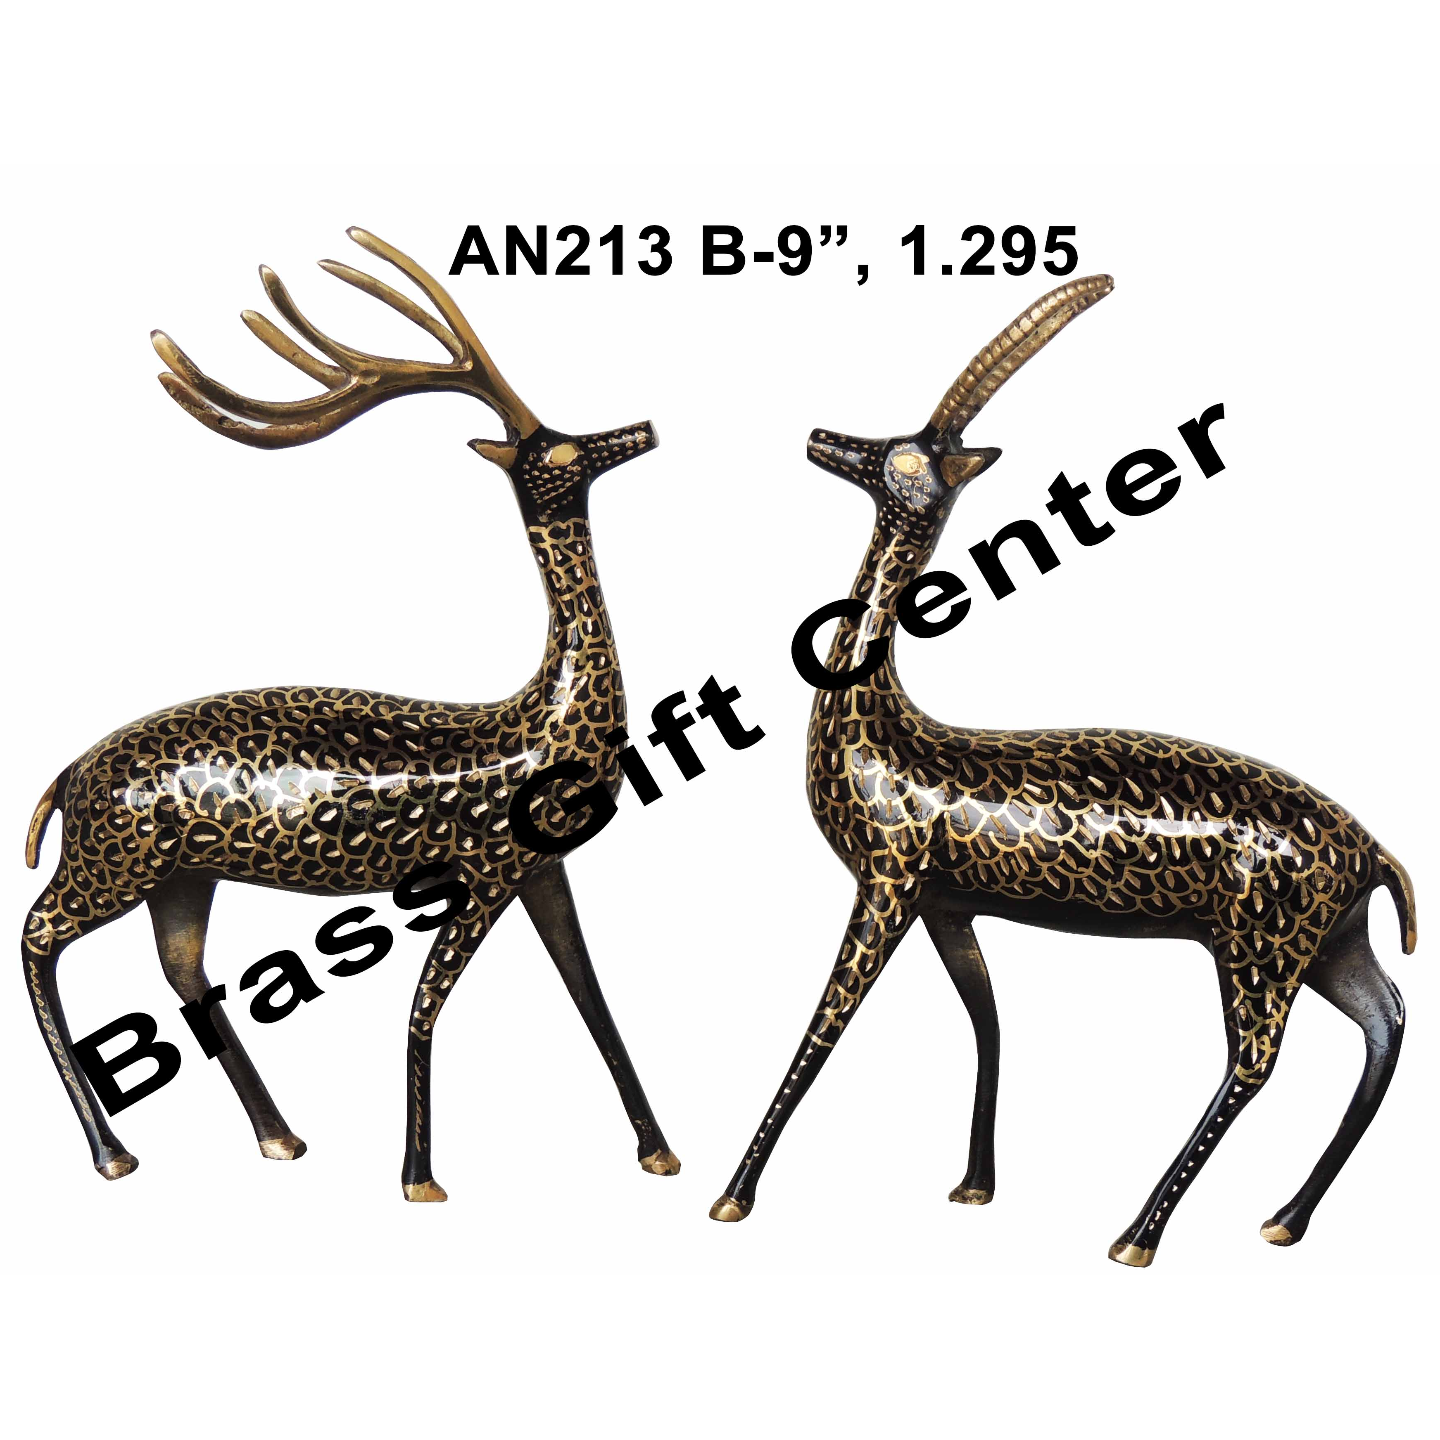 Brass Showpiece Deer Pair Statue With Black Finish, Height 9 Inch AN213 A